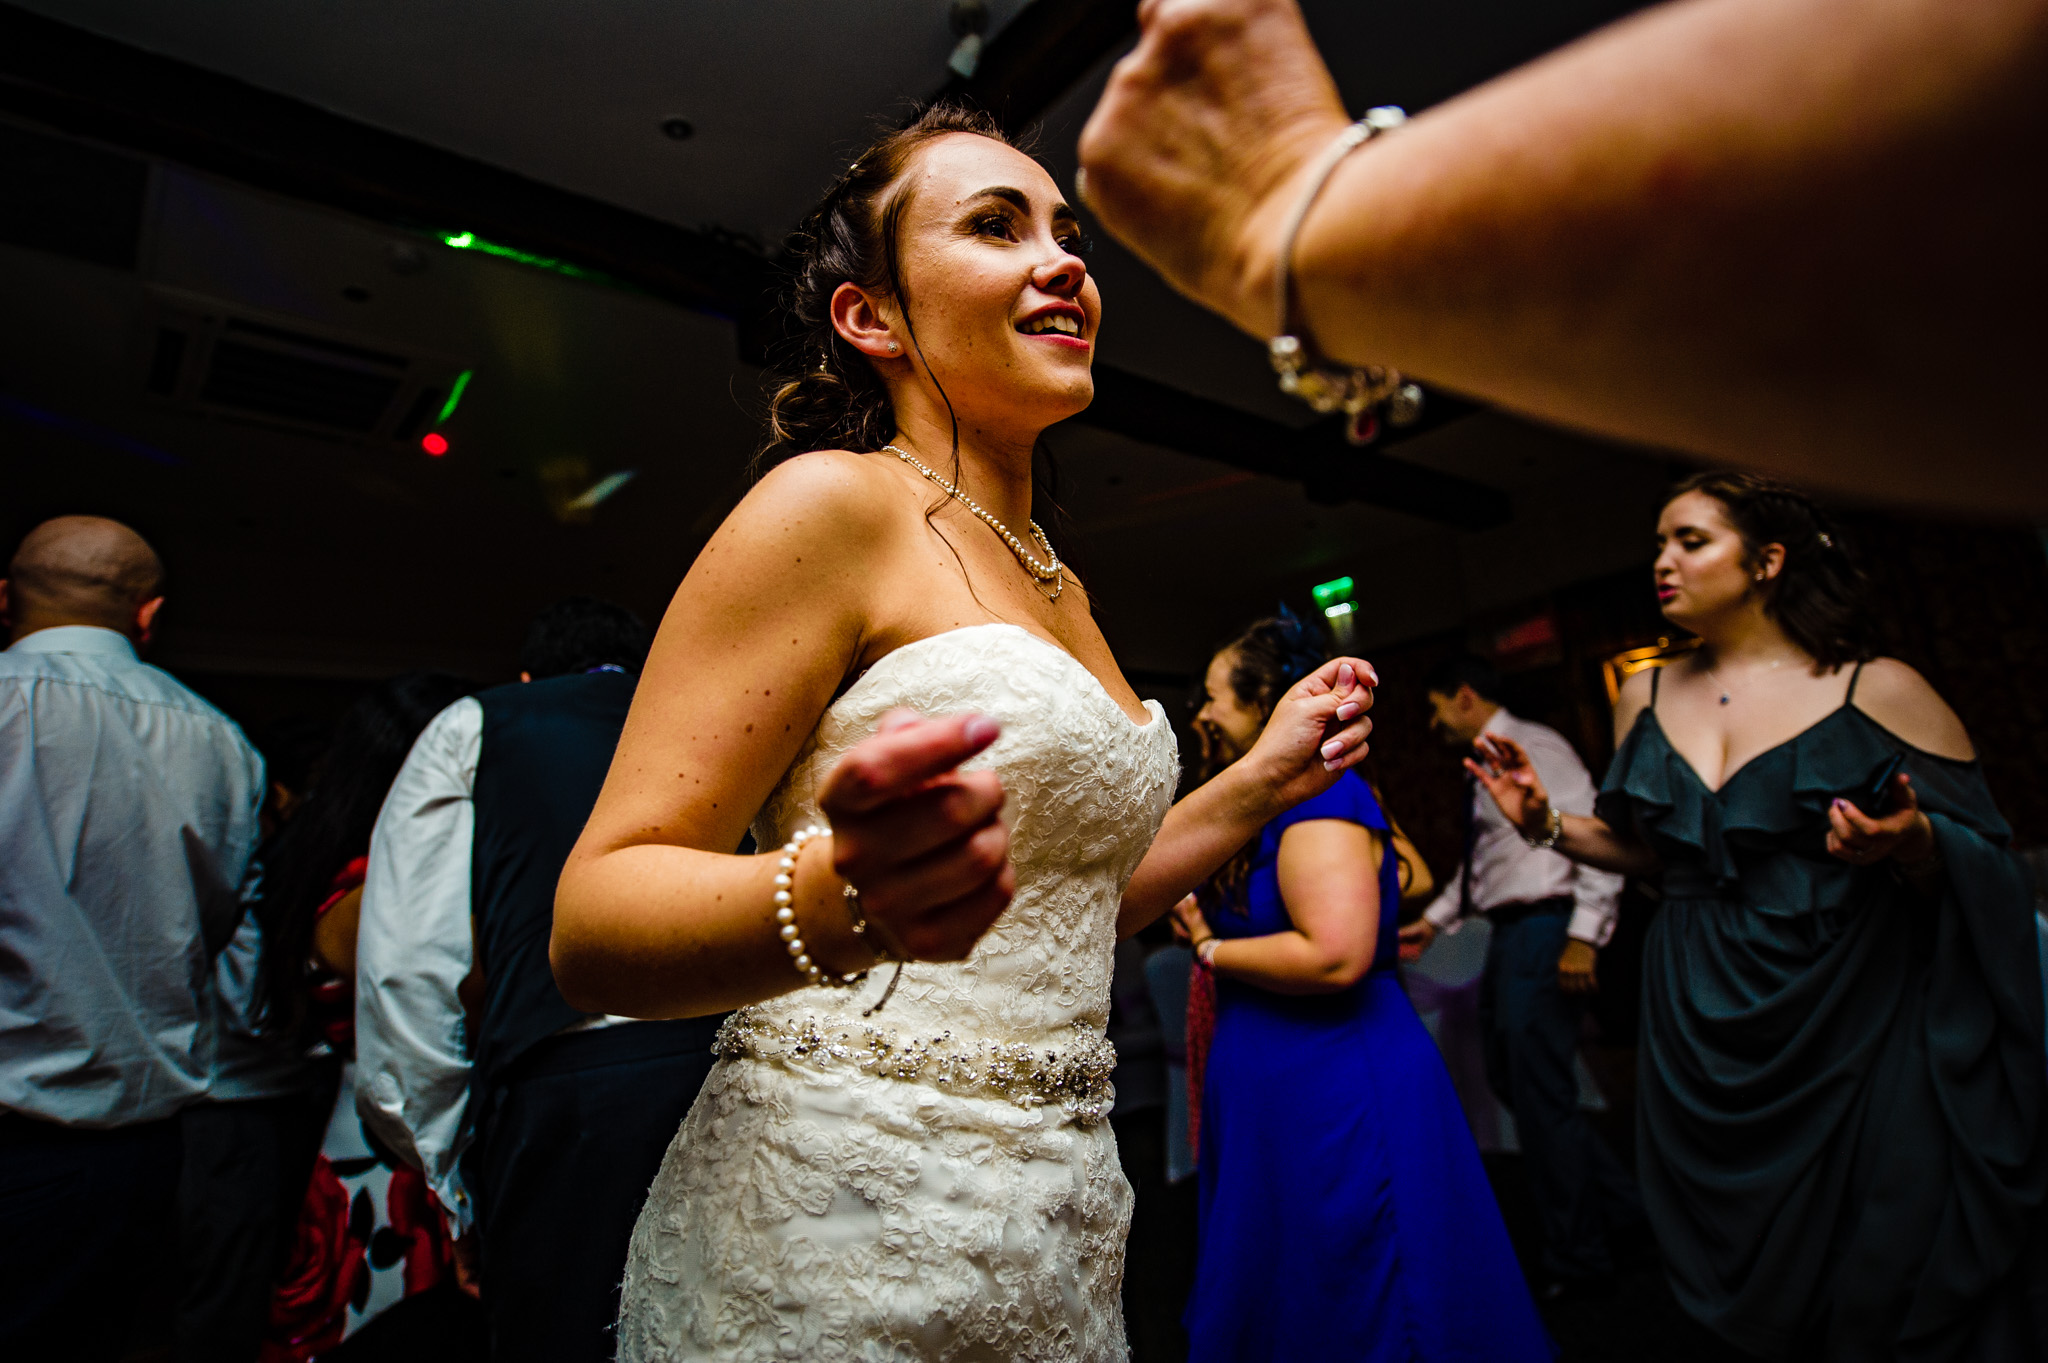 The bride enjoys the music at Holdsworth House